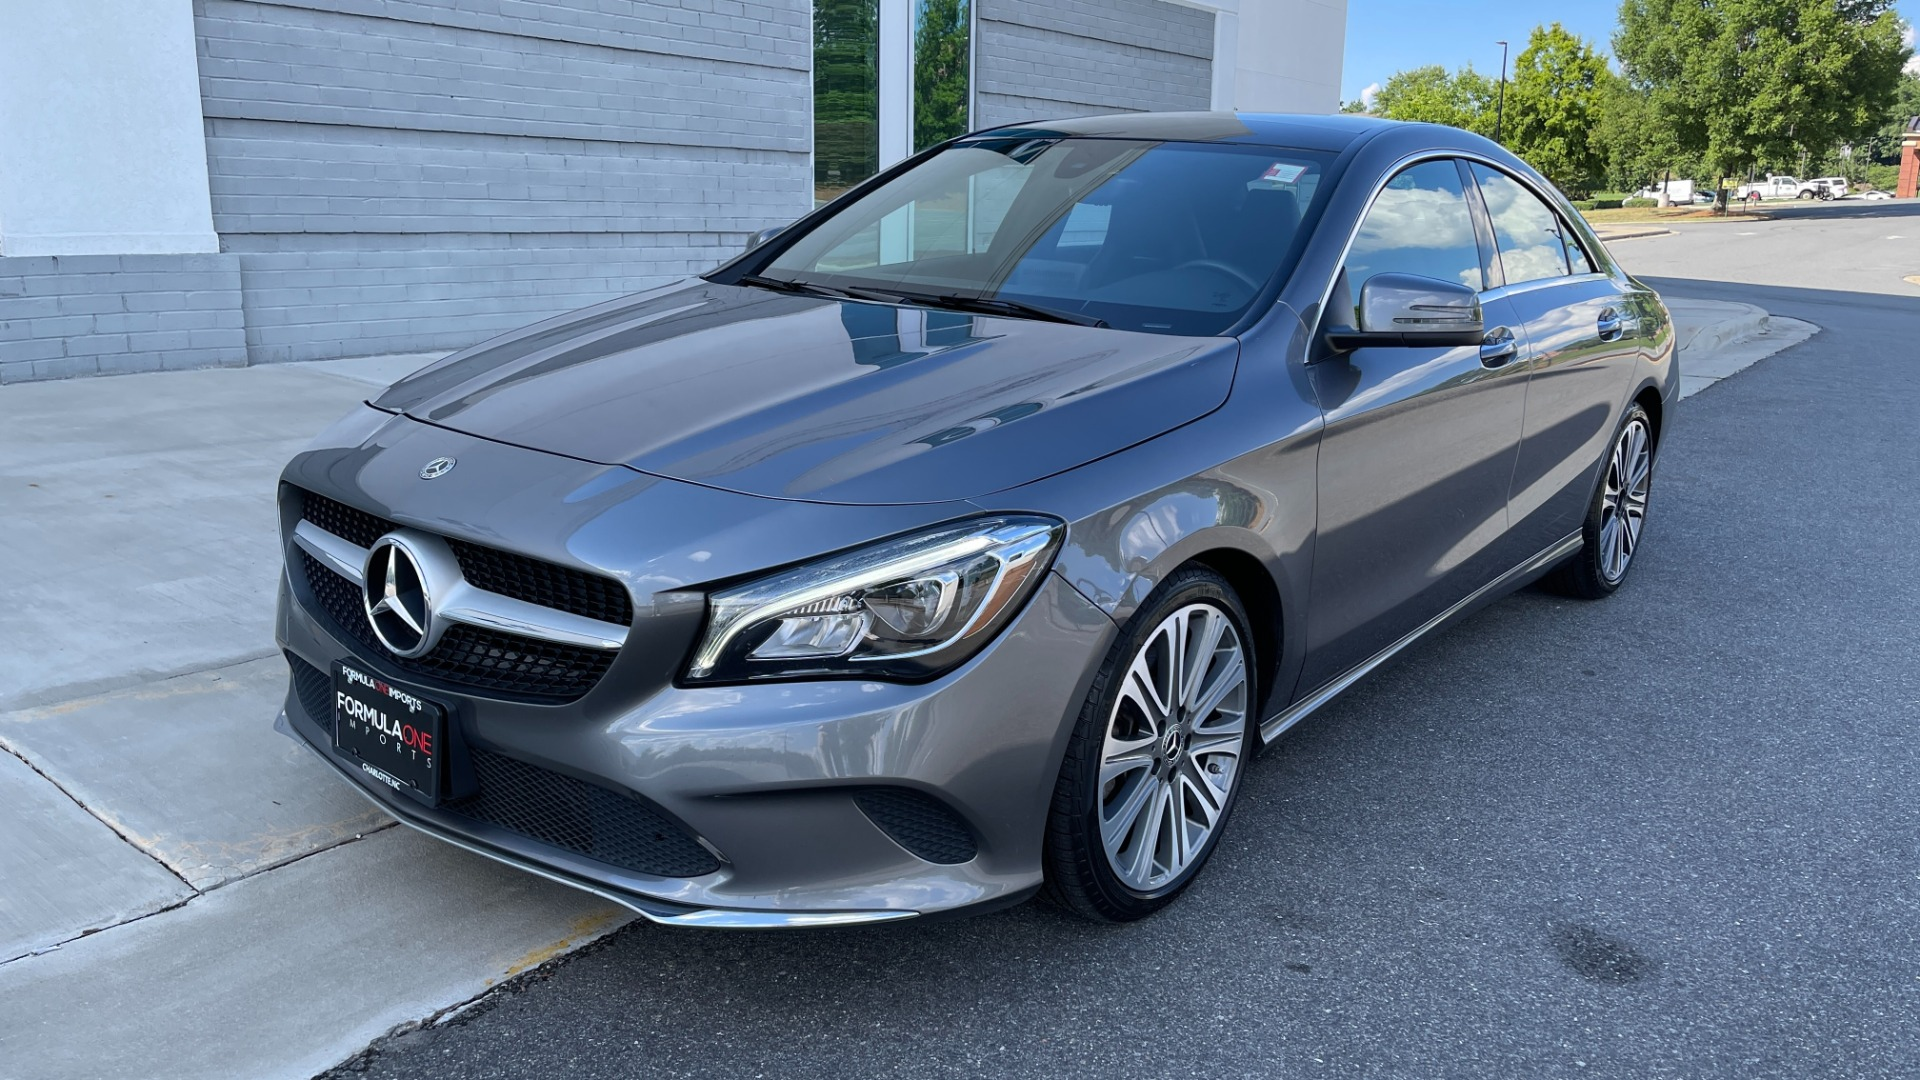 Used 2019 Mercedes-Benz CLA 250 4MATIC PREM & CONV PKG / APPLE / PANO-ROOF / H/K SND / REARVIEW for sale $29,795 at Formula Imports in Charlotte NC 28227 2